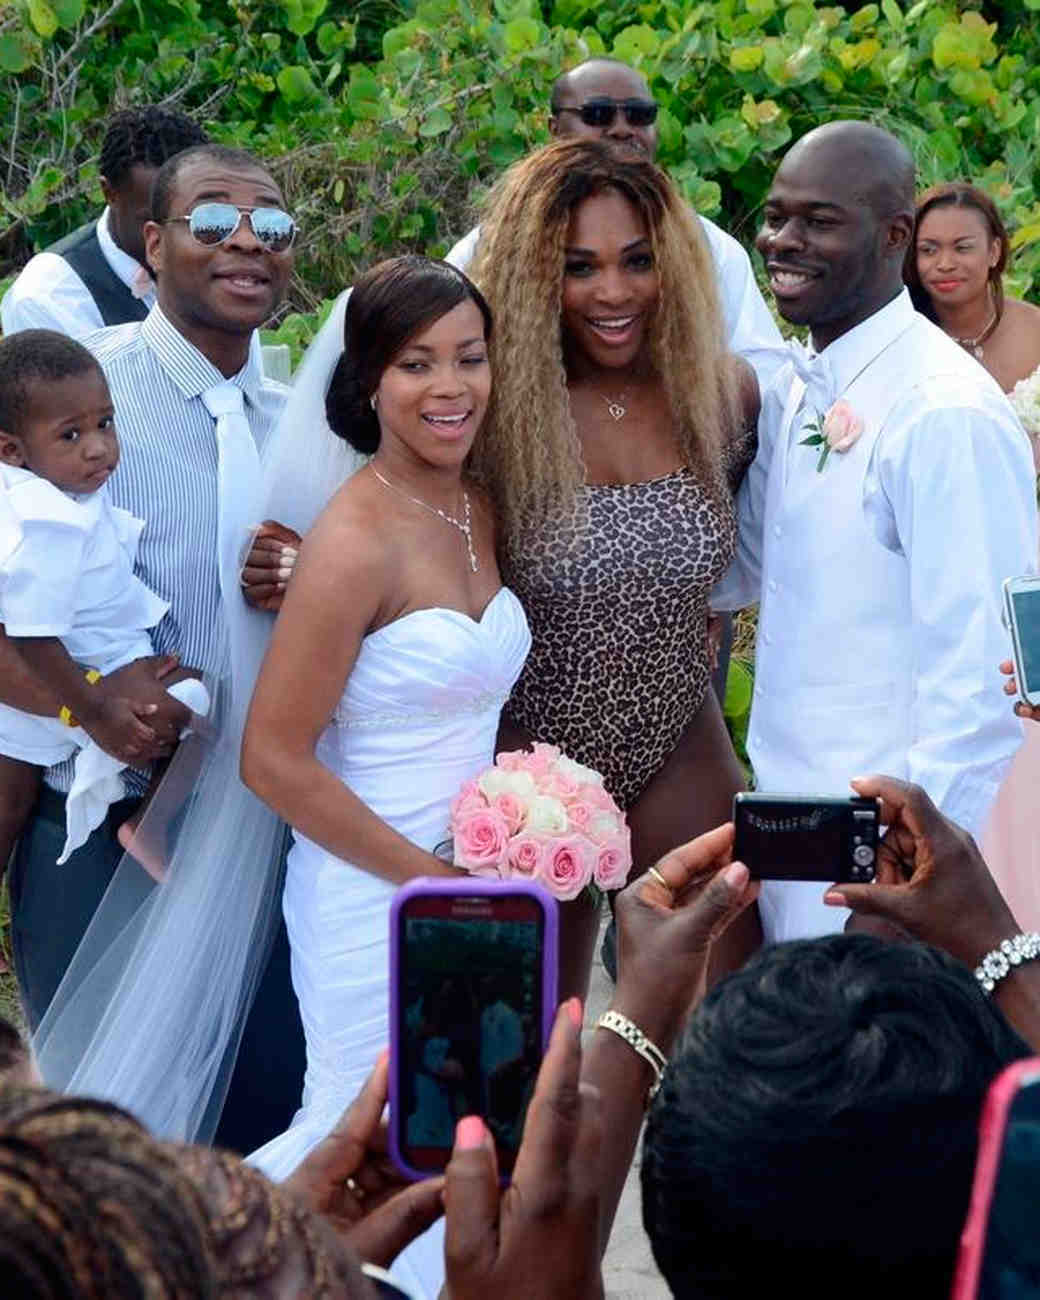 celebrity-wedding-crashers-serena-williams-1215.jpg